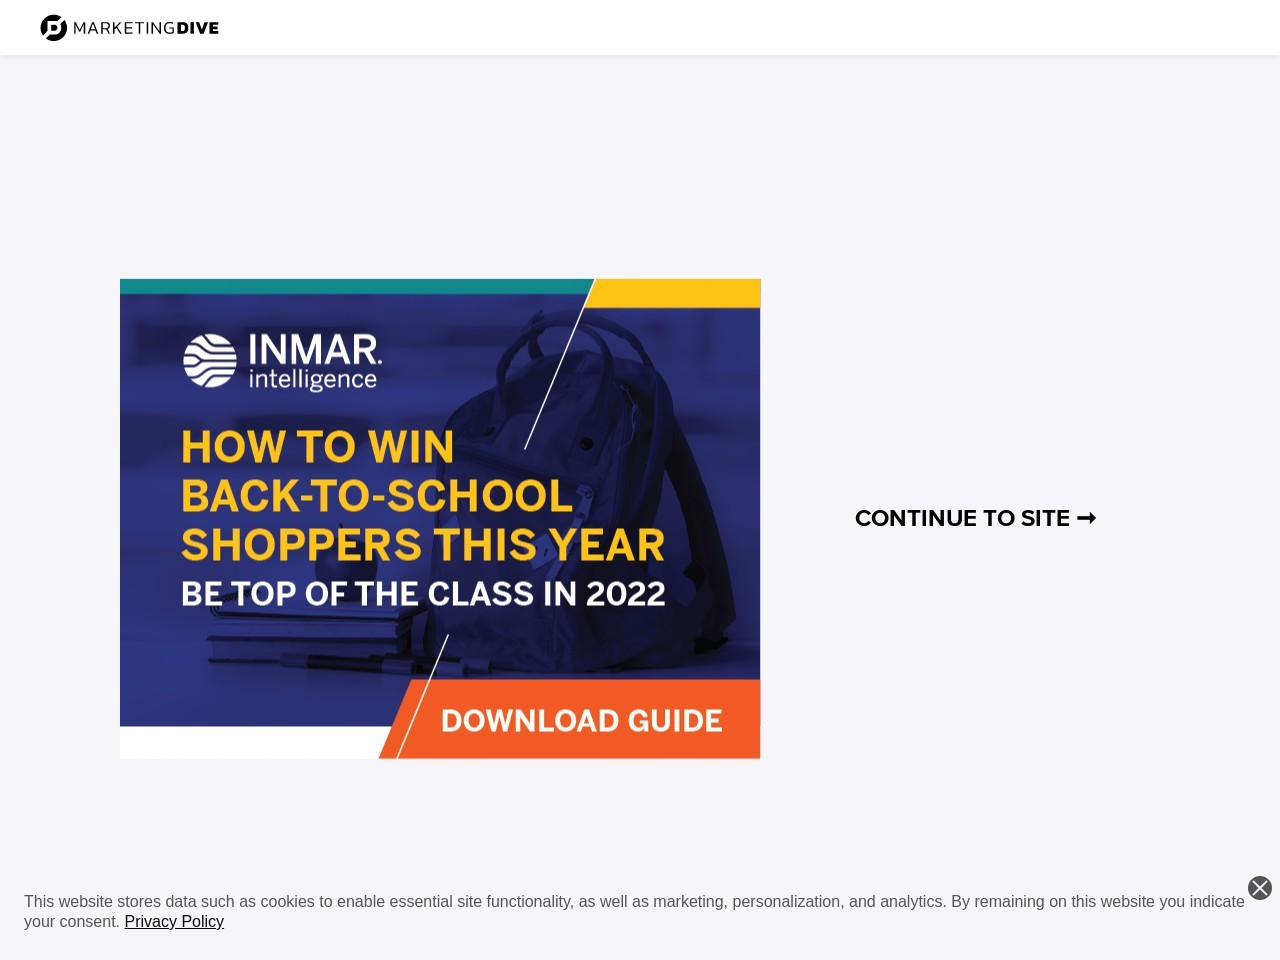 Study: 8% of Instagram accounts are not real people